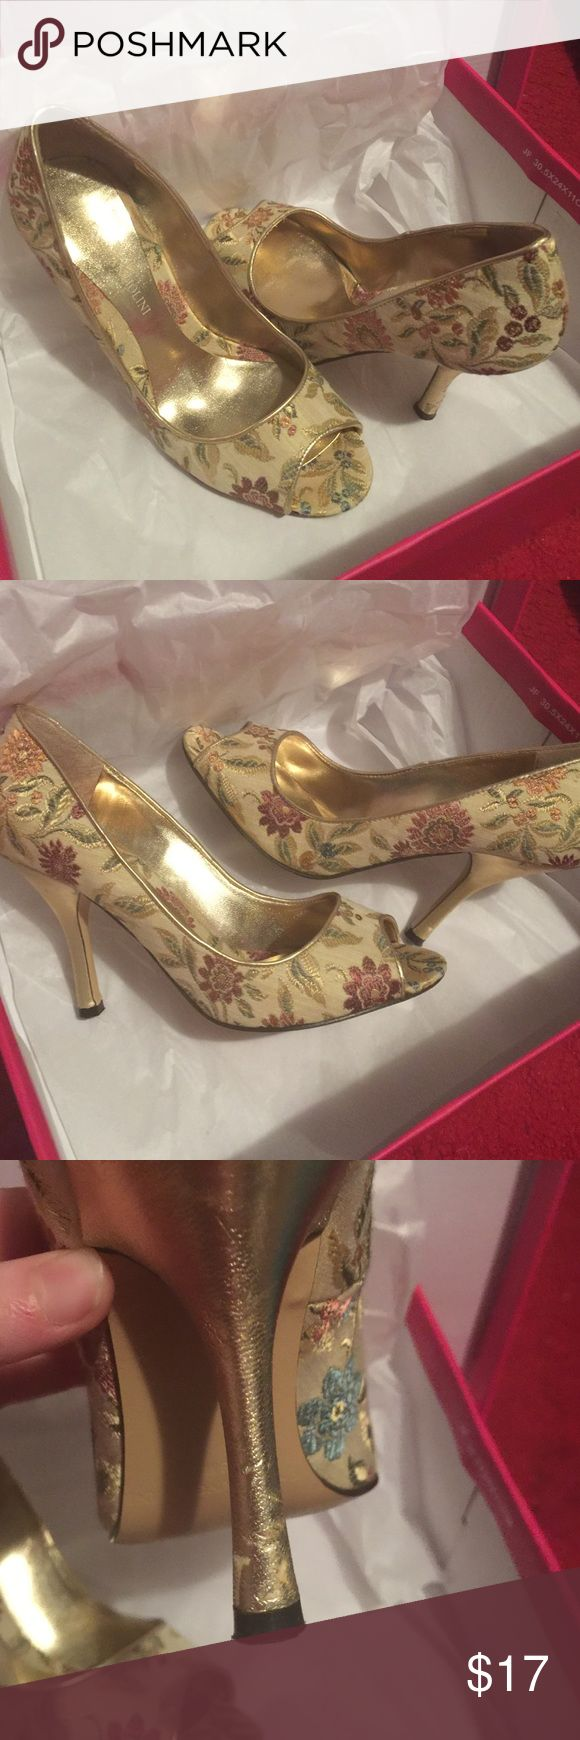 Gold peep toe heels with floral detailing!! Beautiful 3 1/2 inch heels!! Gold with shimmery floral details!! Only wore a couple of times!! Beautiful shoes!! Enzo Angiolini Shoes Heels